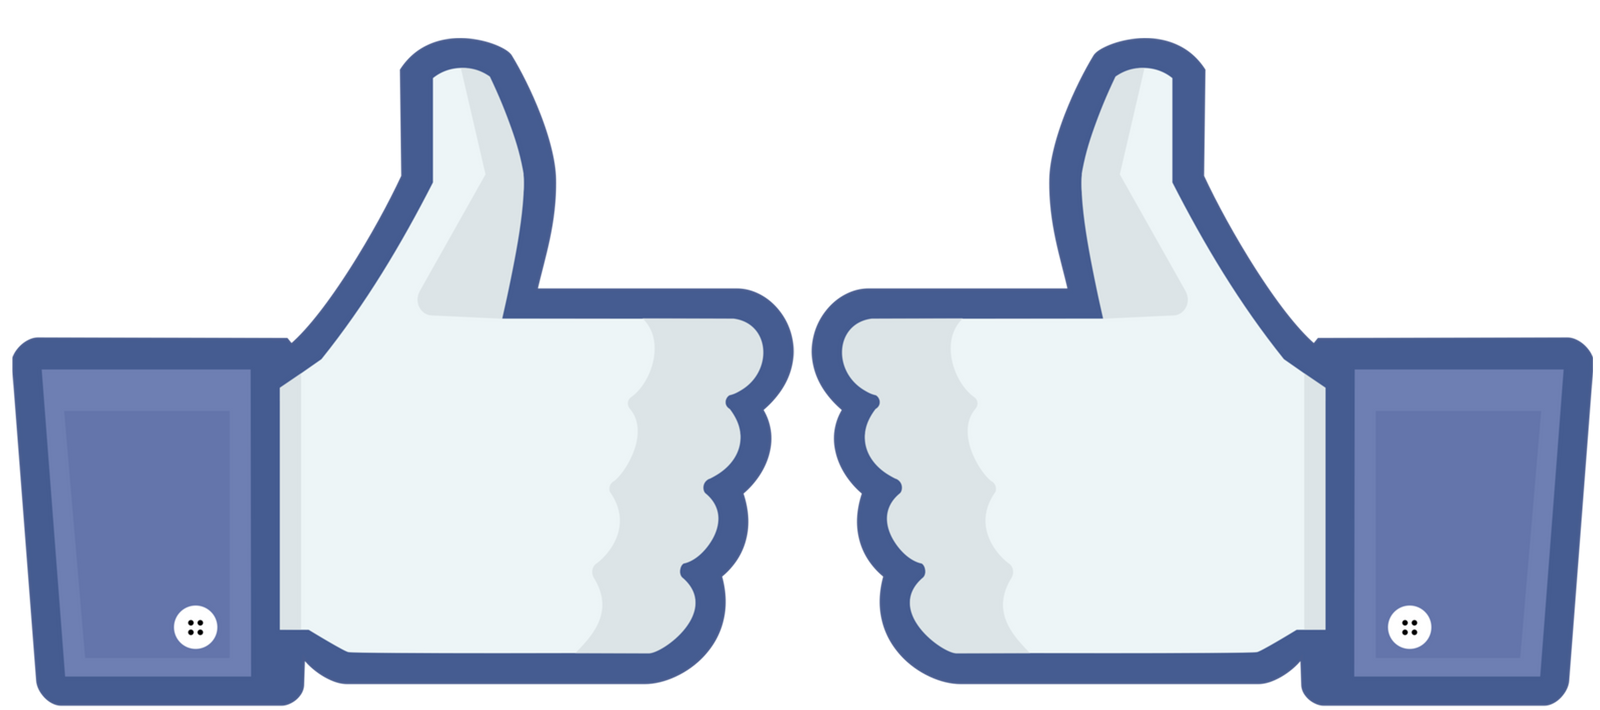 Facebook Double Thumbs Up by topher147 on DeviantArt  Facebook Thumbs Up Transparent Background